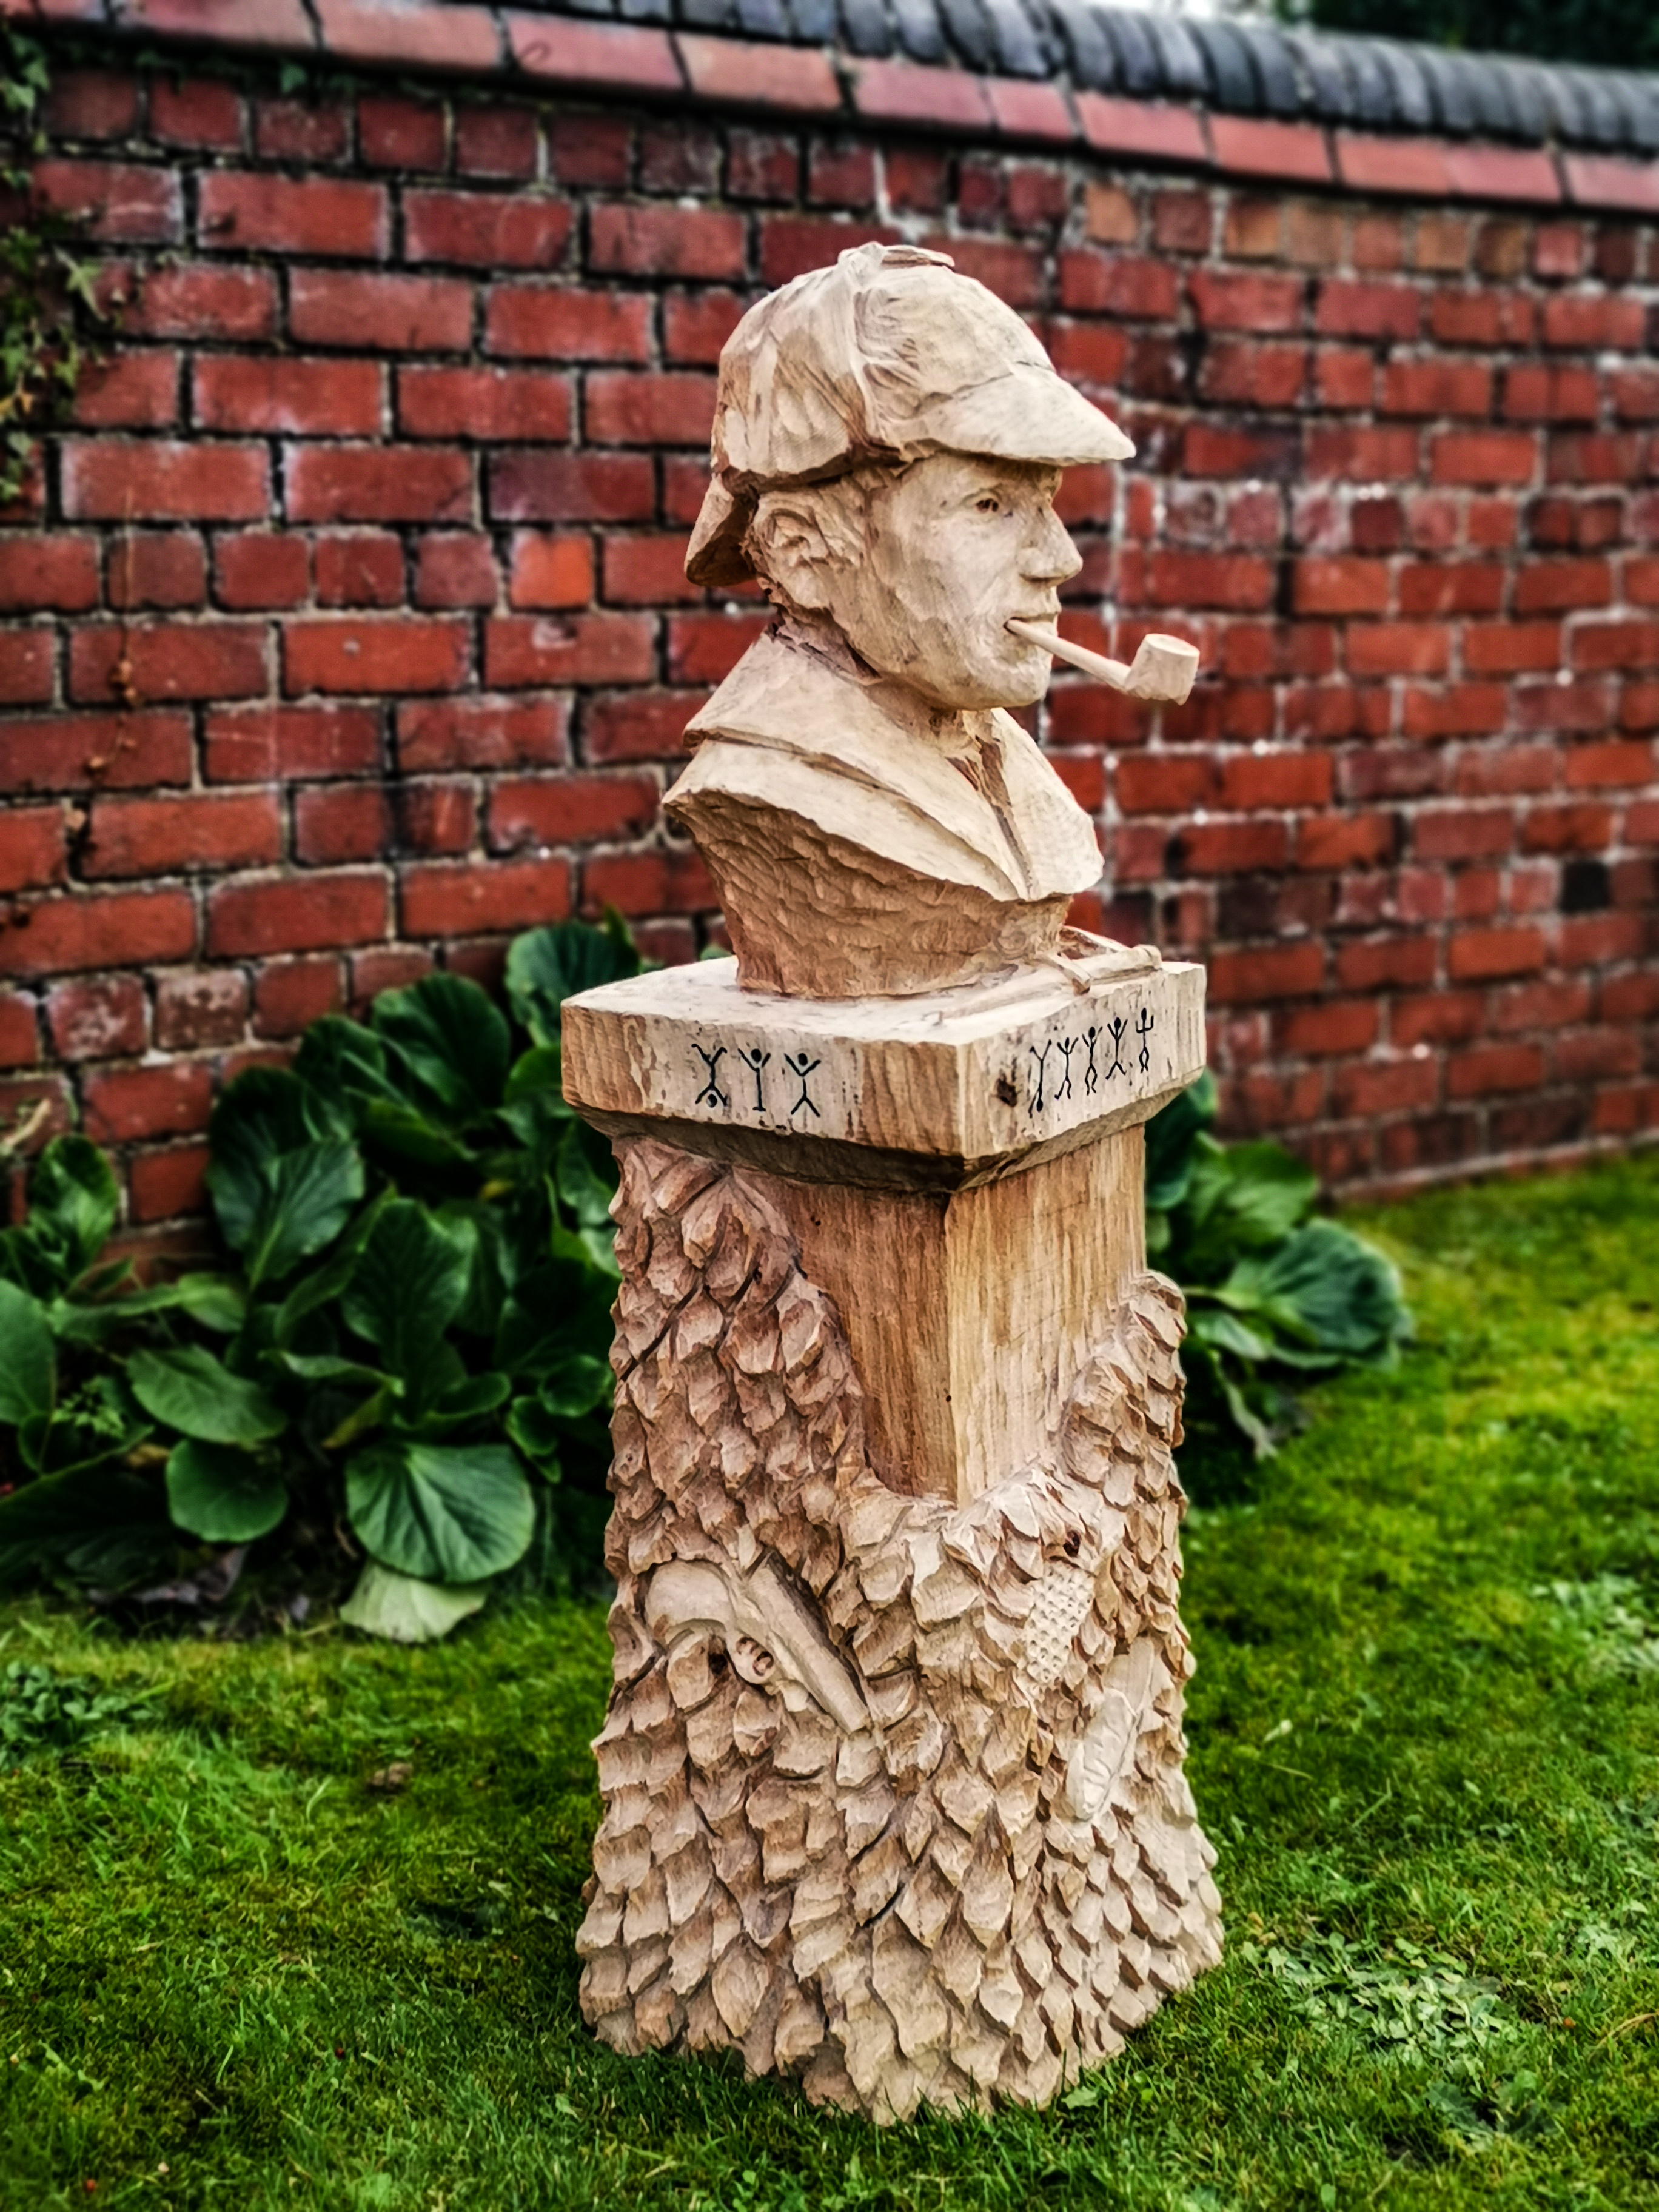 Sculptures based on literature: Sherlock Holmes bust by Simon O'Rourke